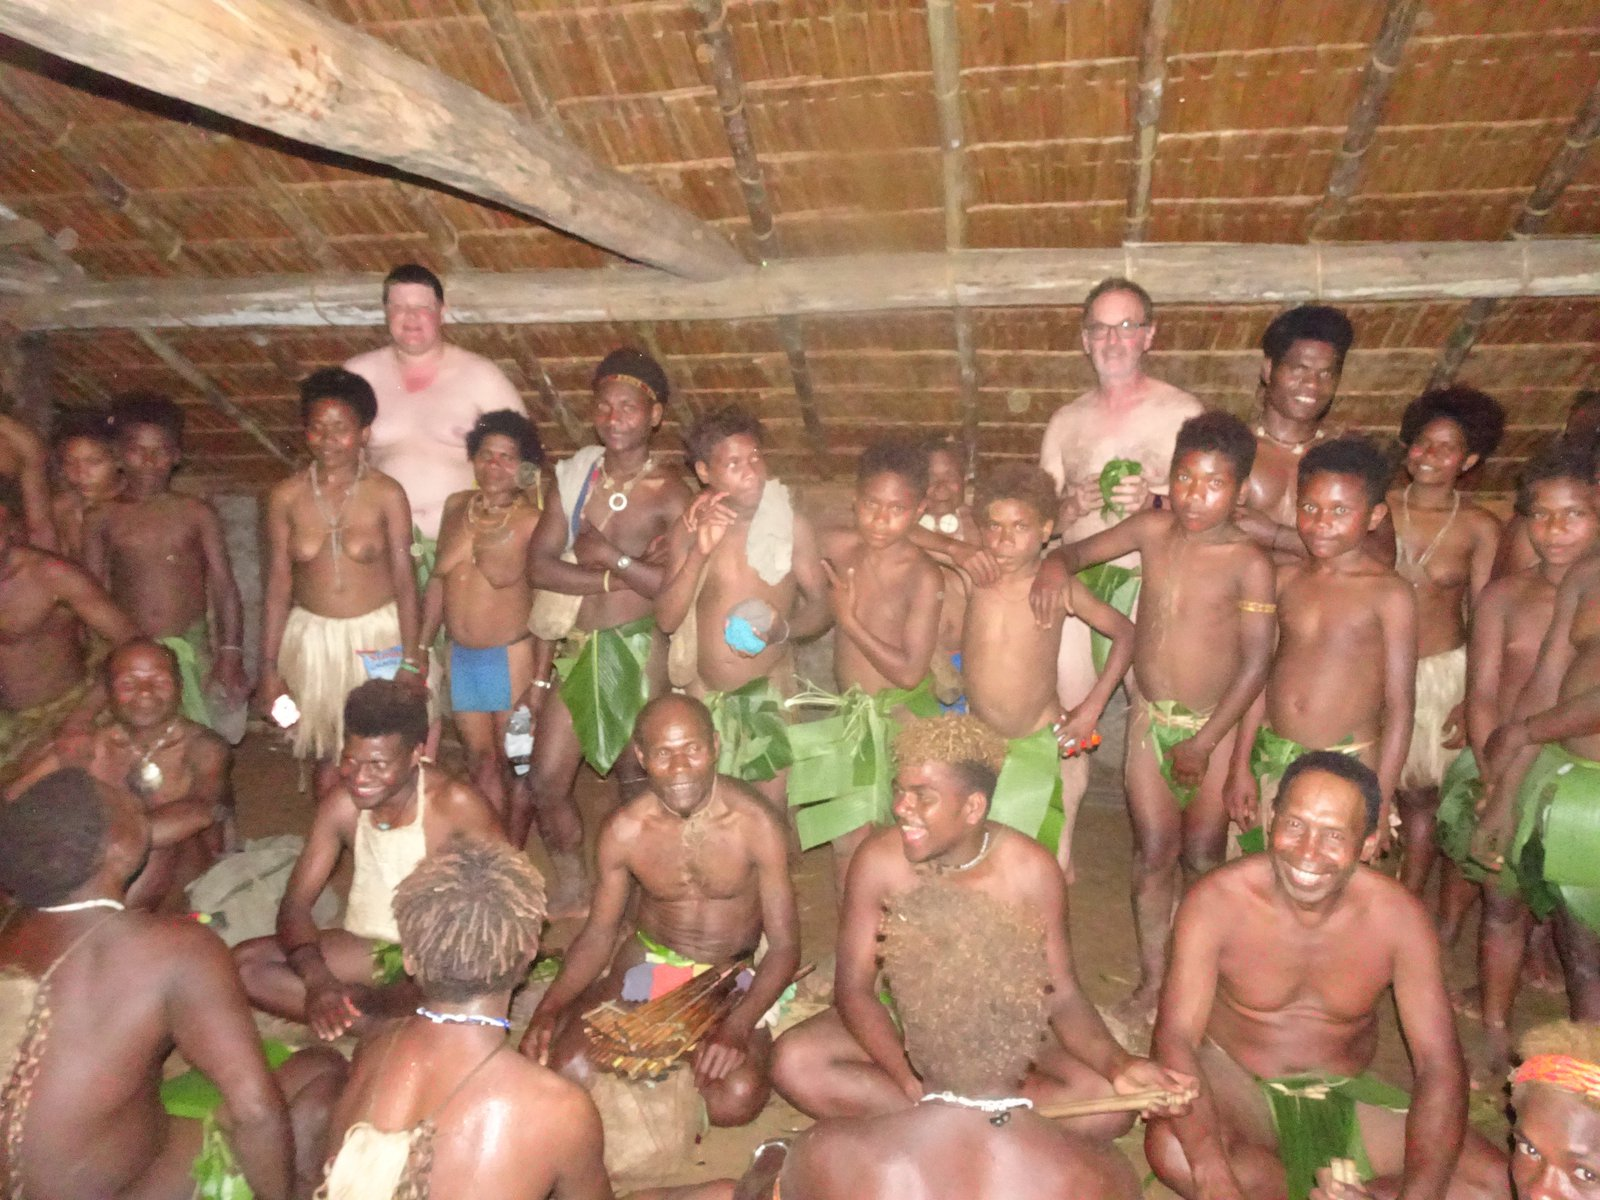 Solomon Islands Expedition - Ornithology - Warm Kwaio welcome